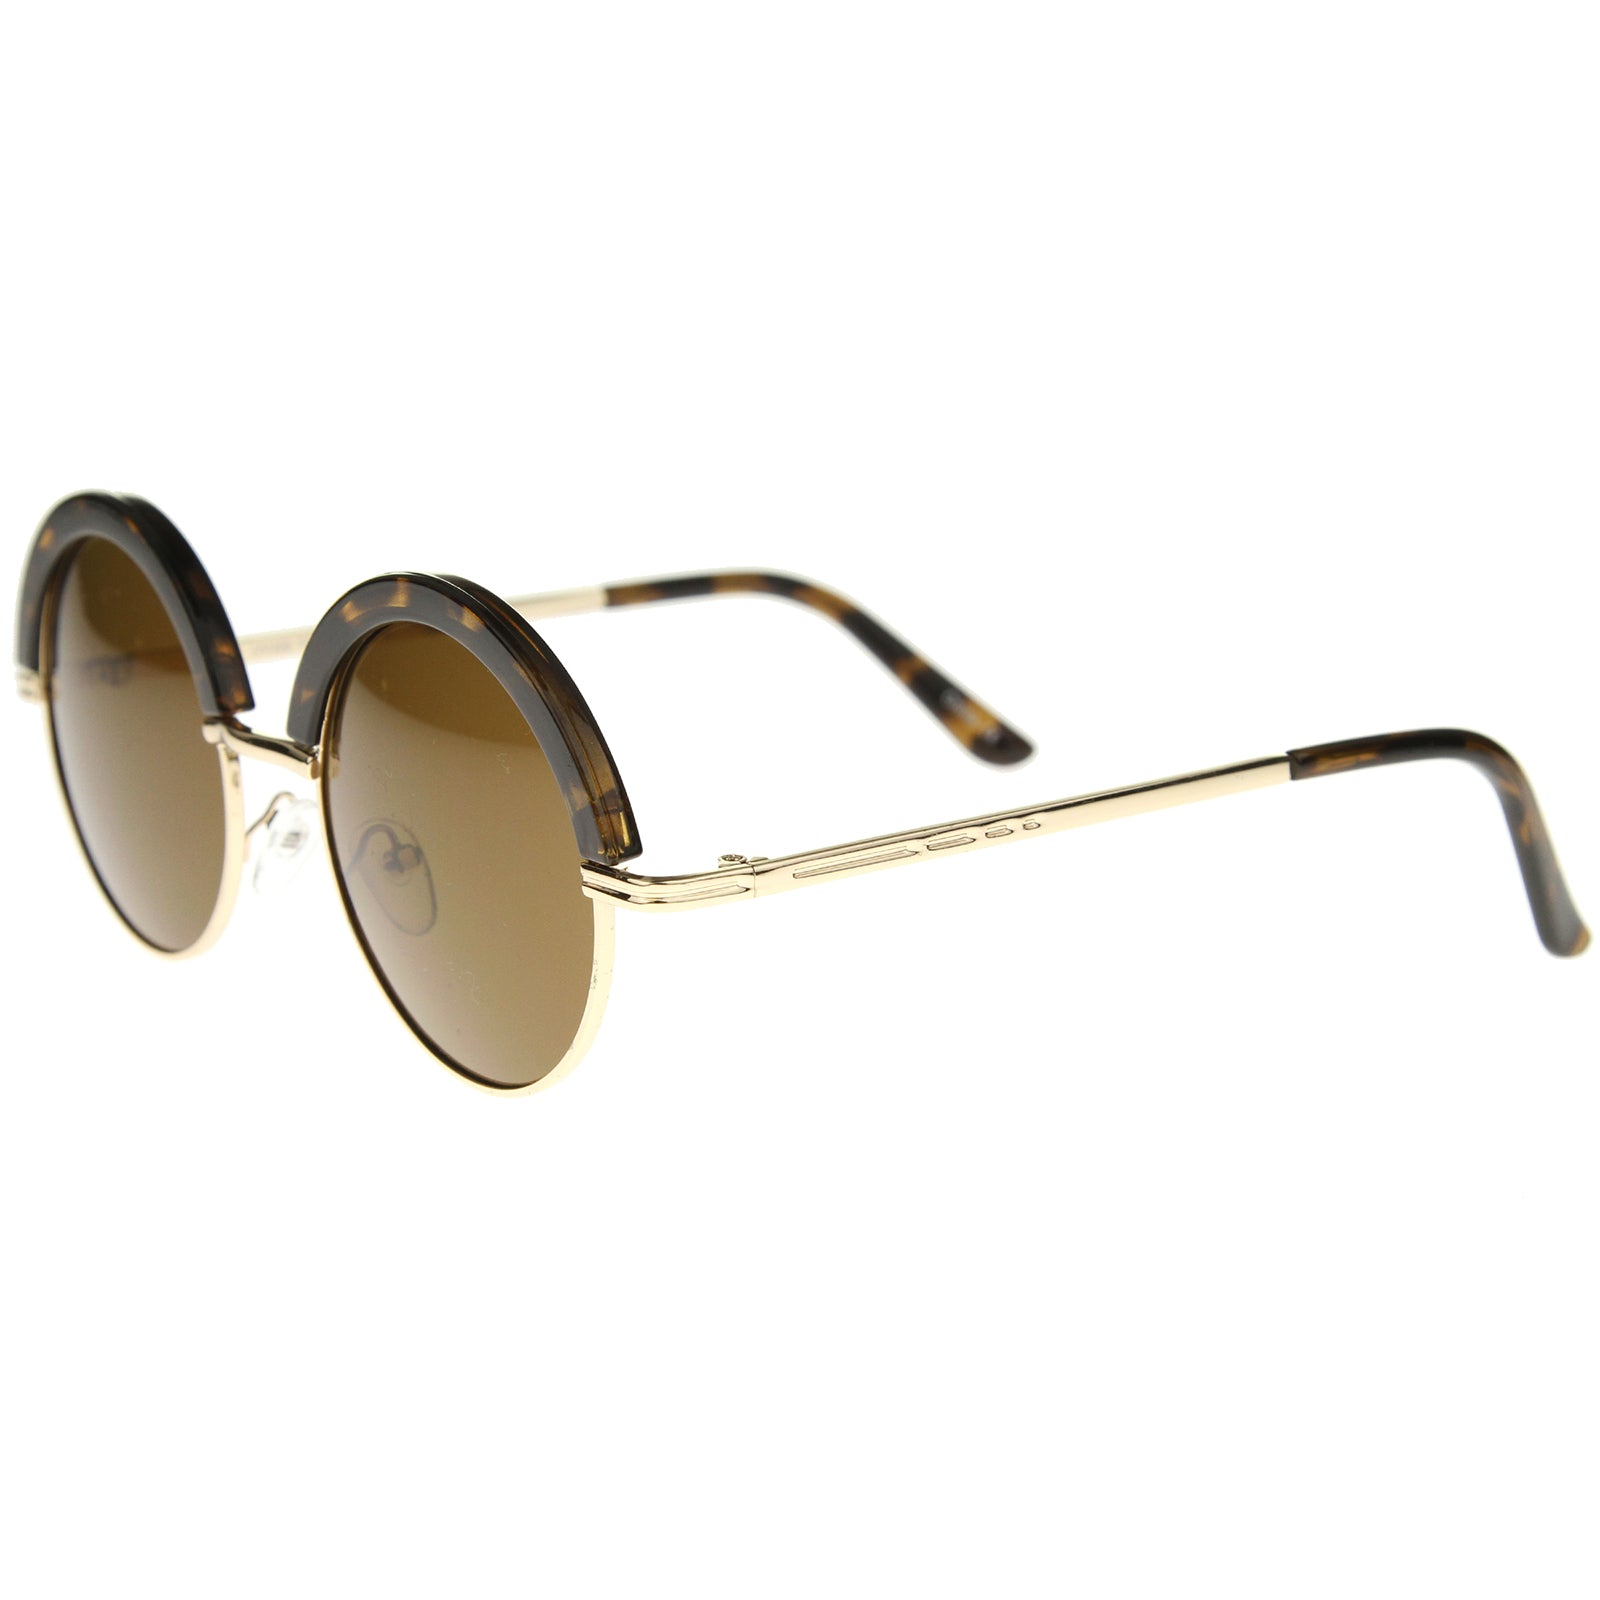 Womens Metal Round Sunglasses With UV400 Protected Composite Lens - sunglass.la - 7